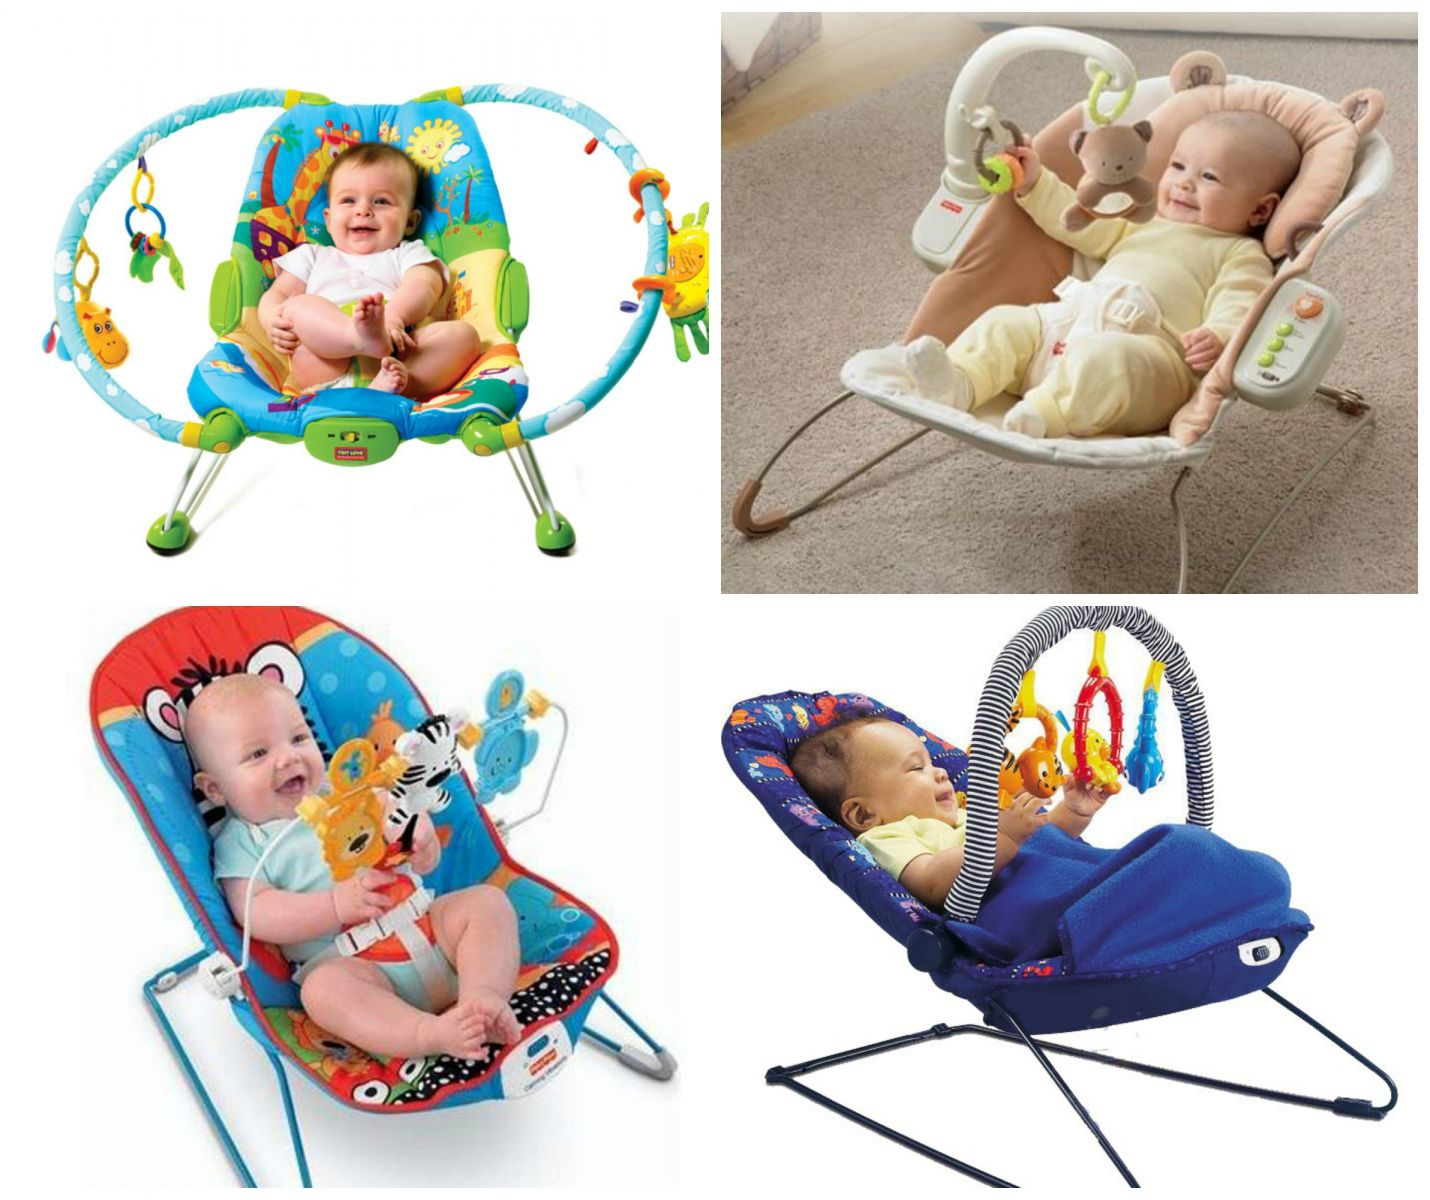 Toys for a month-old baby. Armchairs